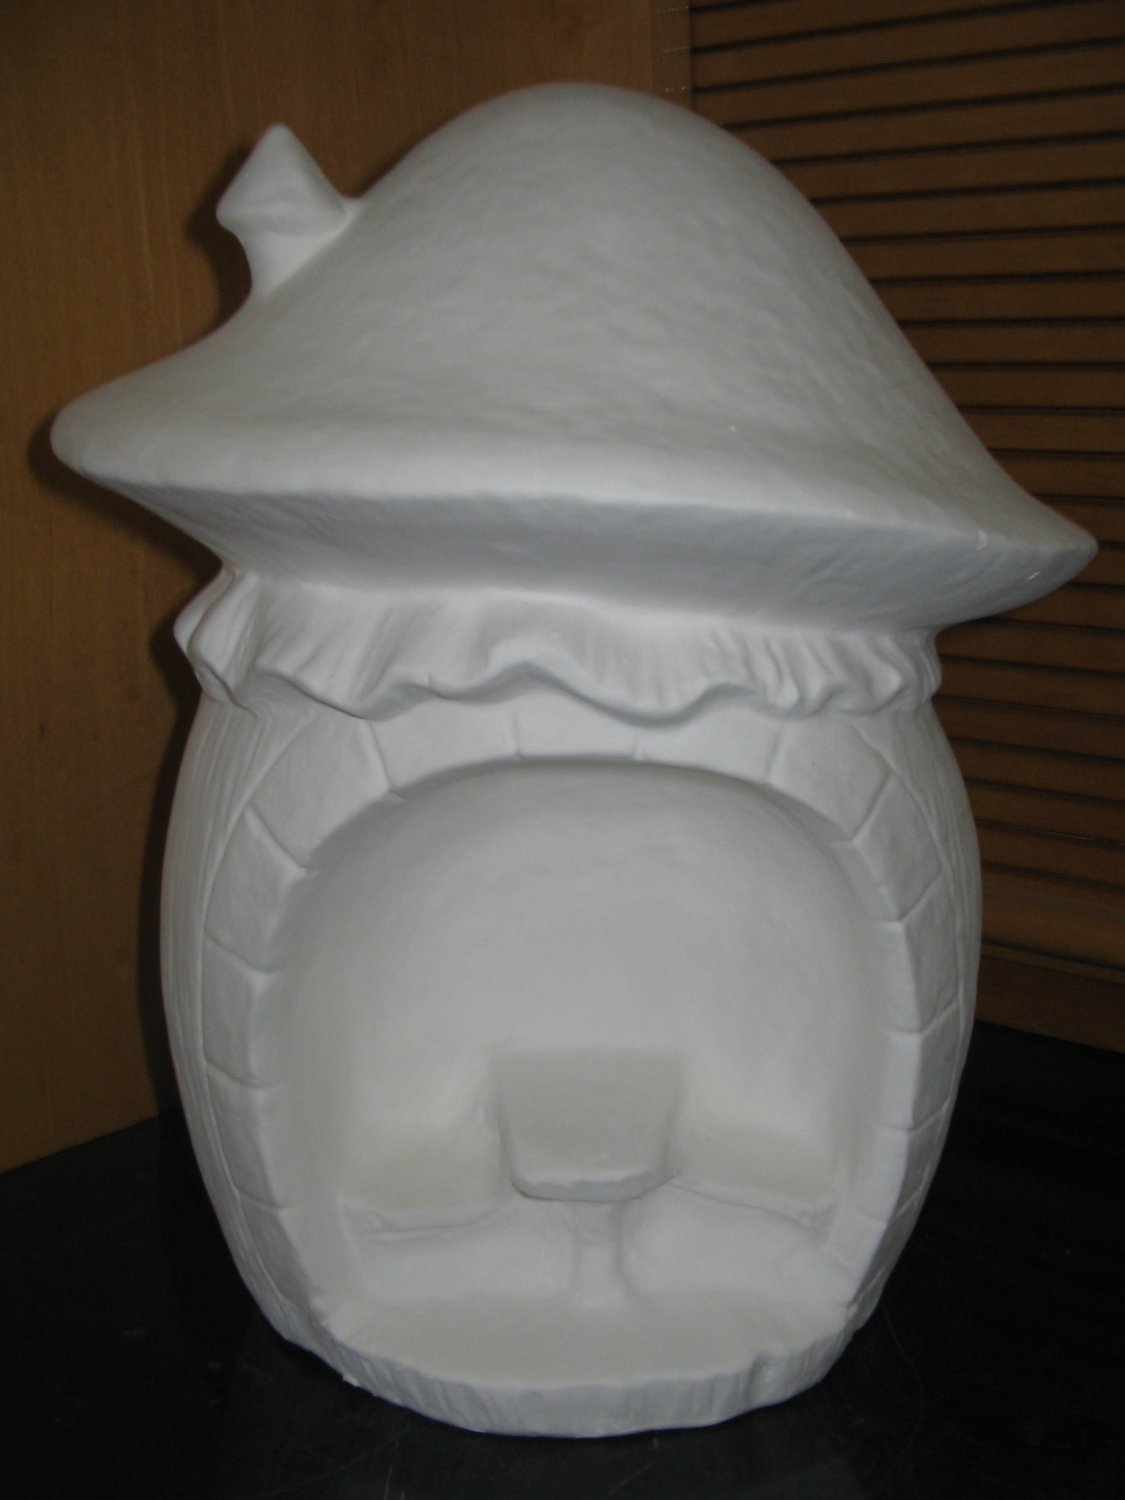 U Paint Ceramic Mushroom House With Bench And Table Ready To Paint Ceramic Bisque